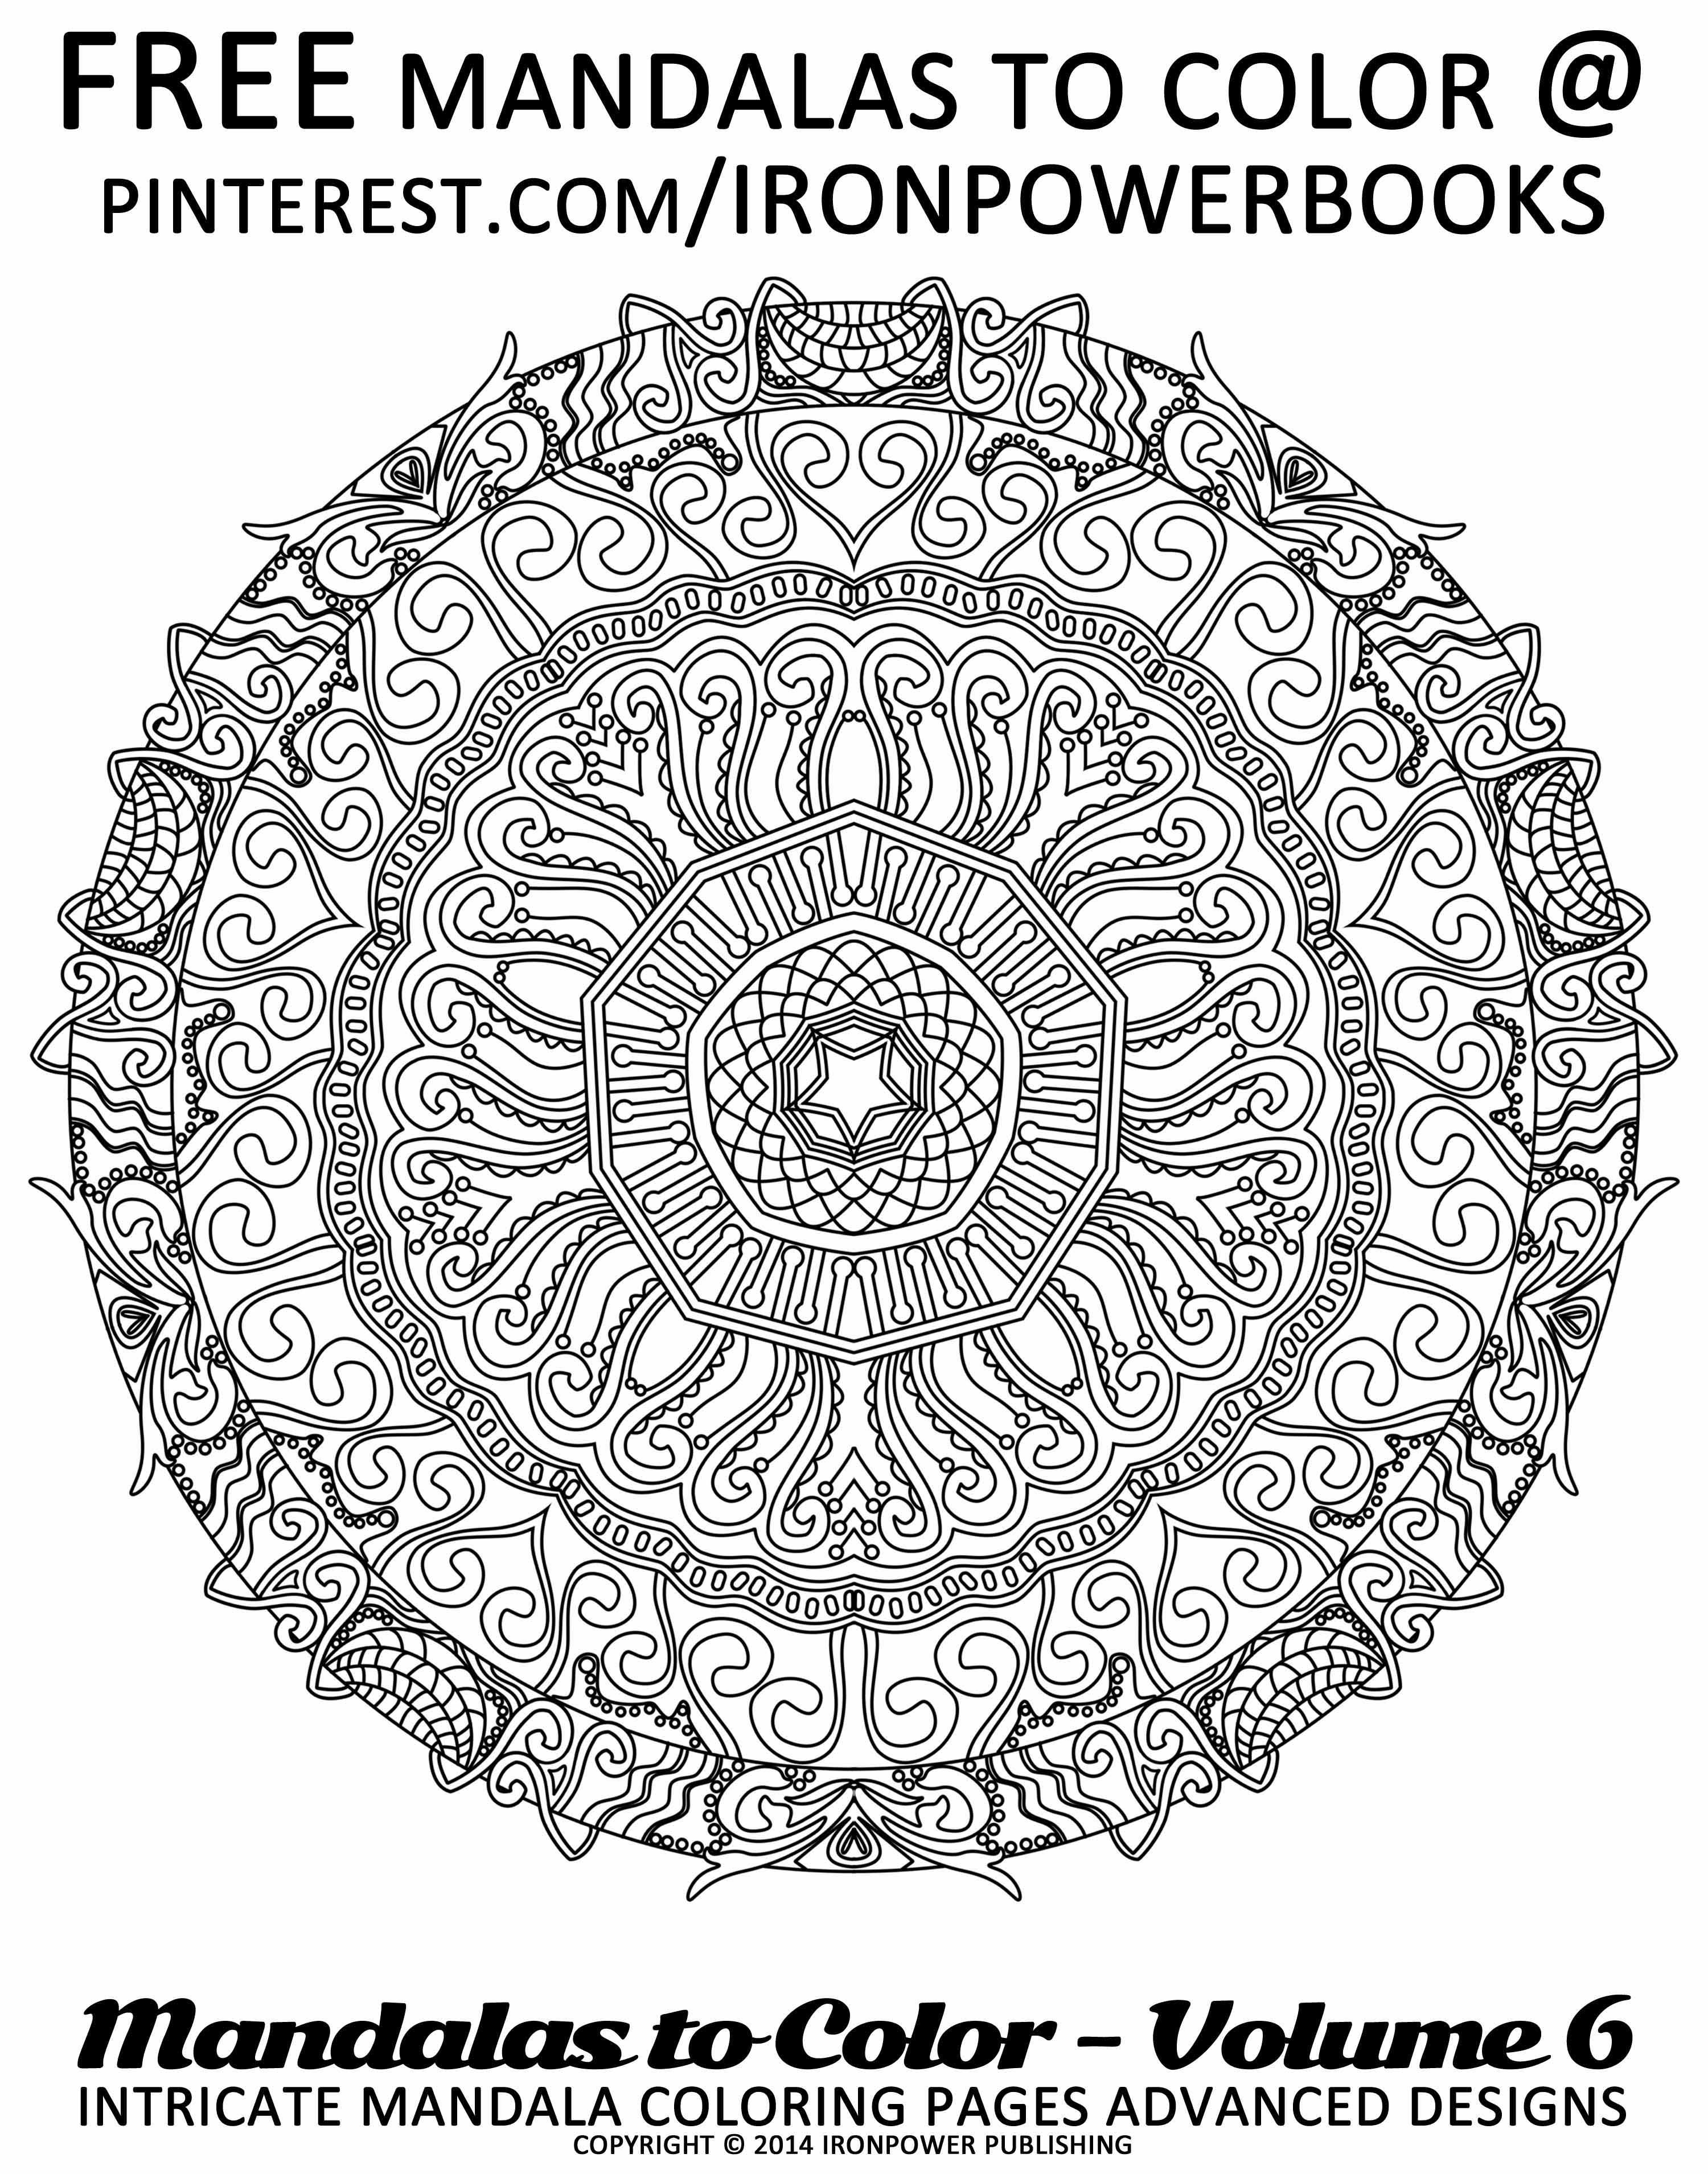 Mandala Coloring Pages For Free Ironpowerbooks Visit Http Www Amazon Com Mandalas Color Int Mandala Coloring Pages Mandala Coloring Books Mandala Coloring